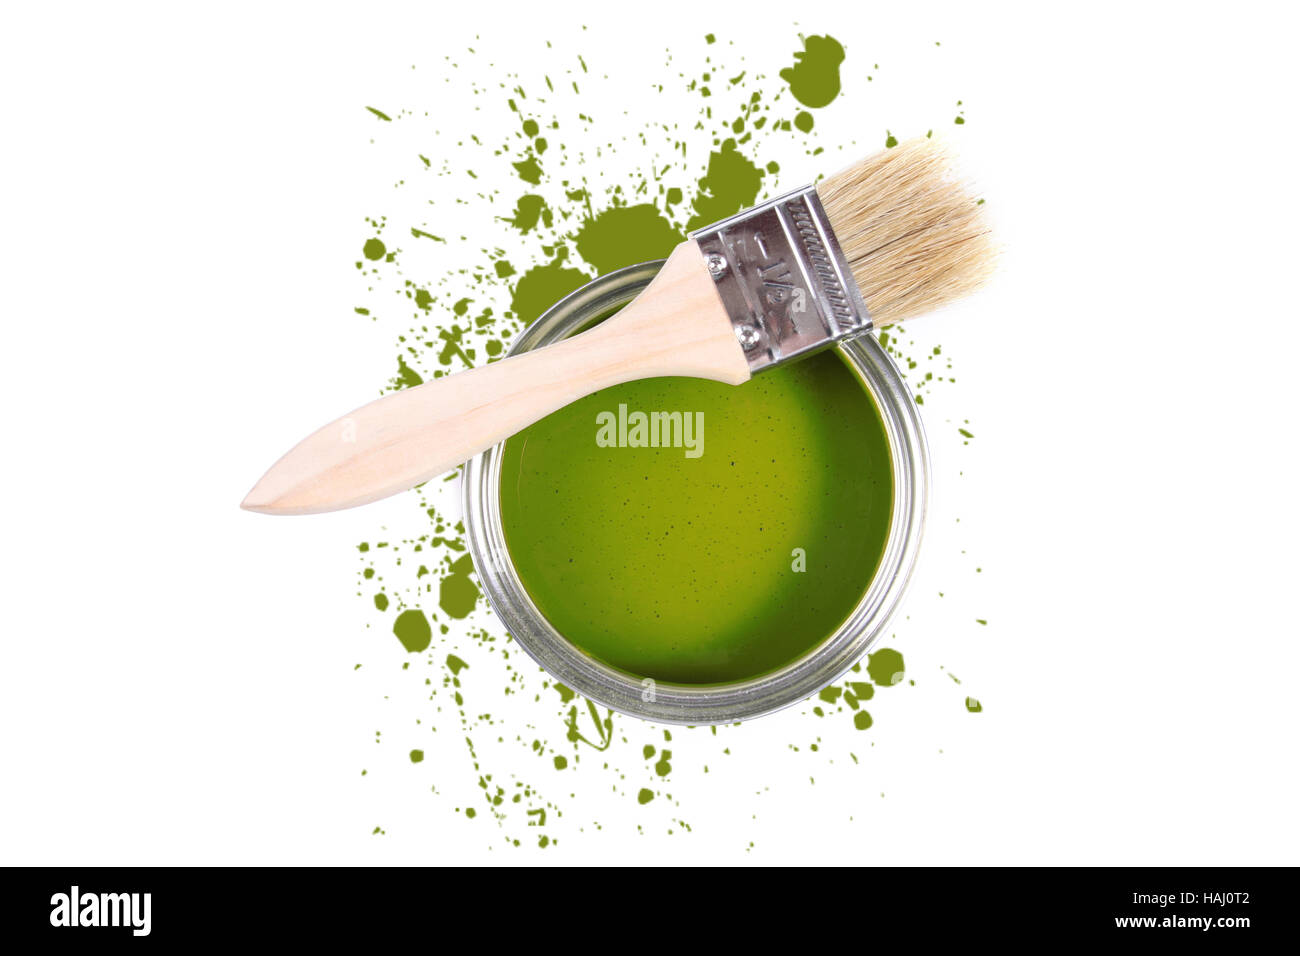 Green paint can with brush and color stains - Stock Image